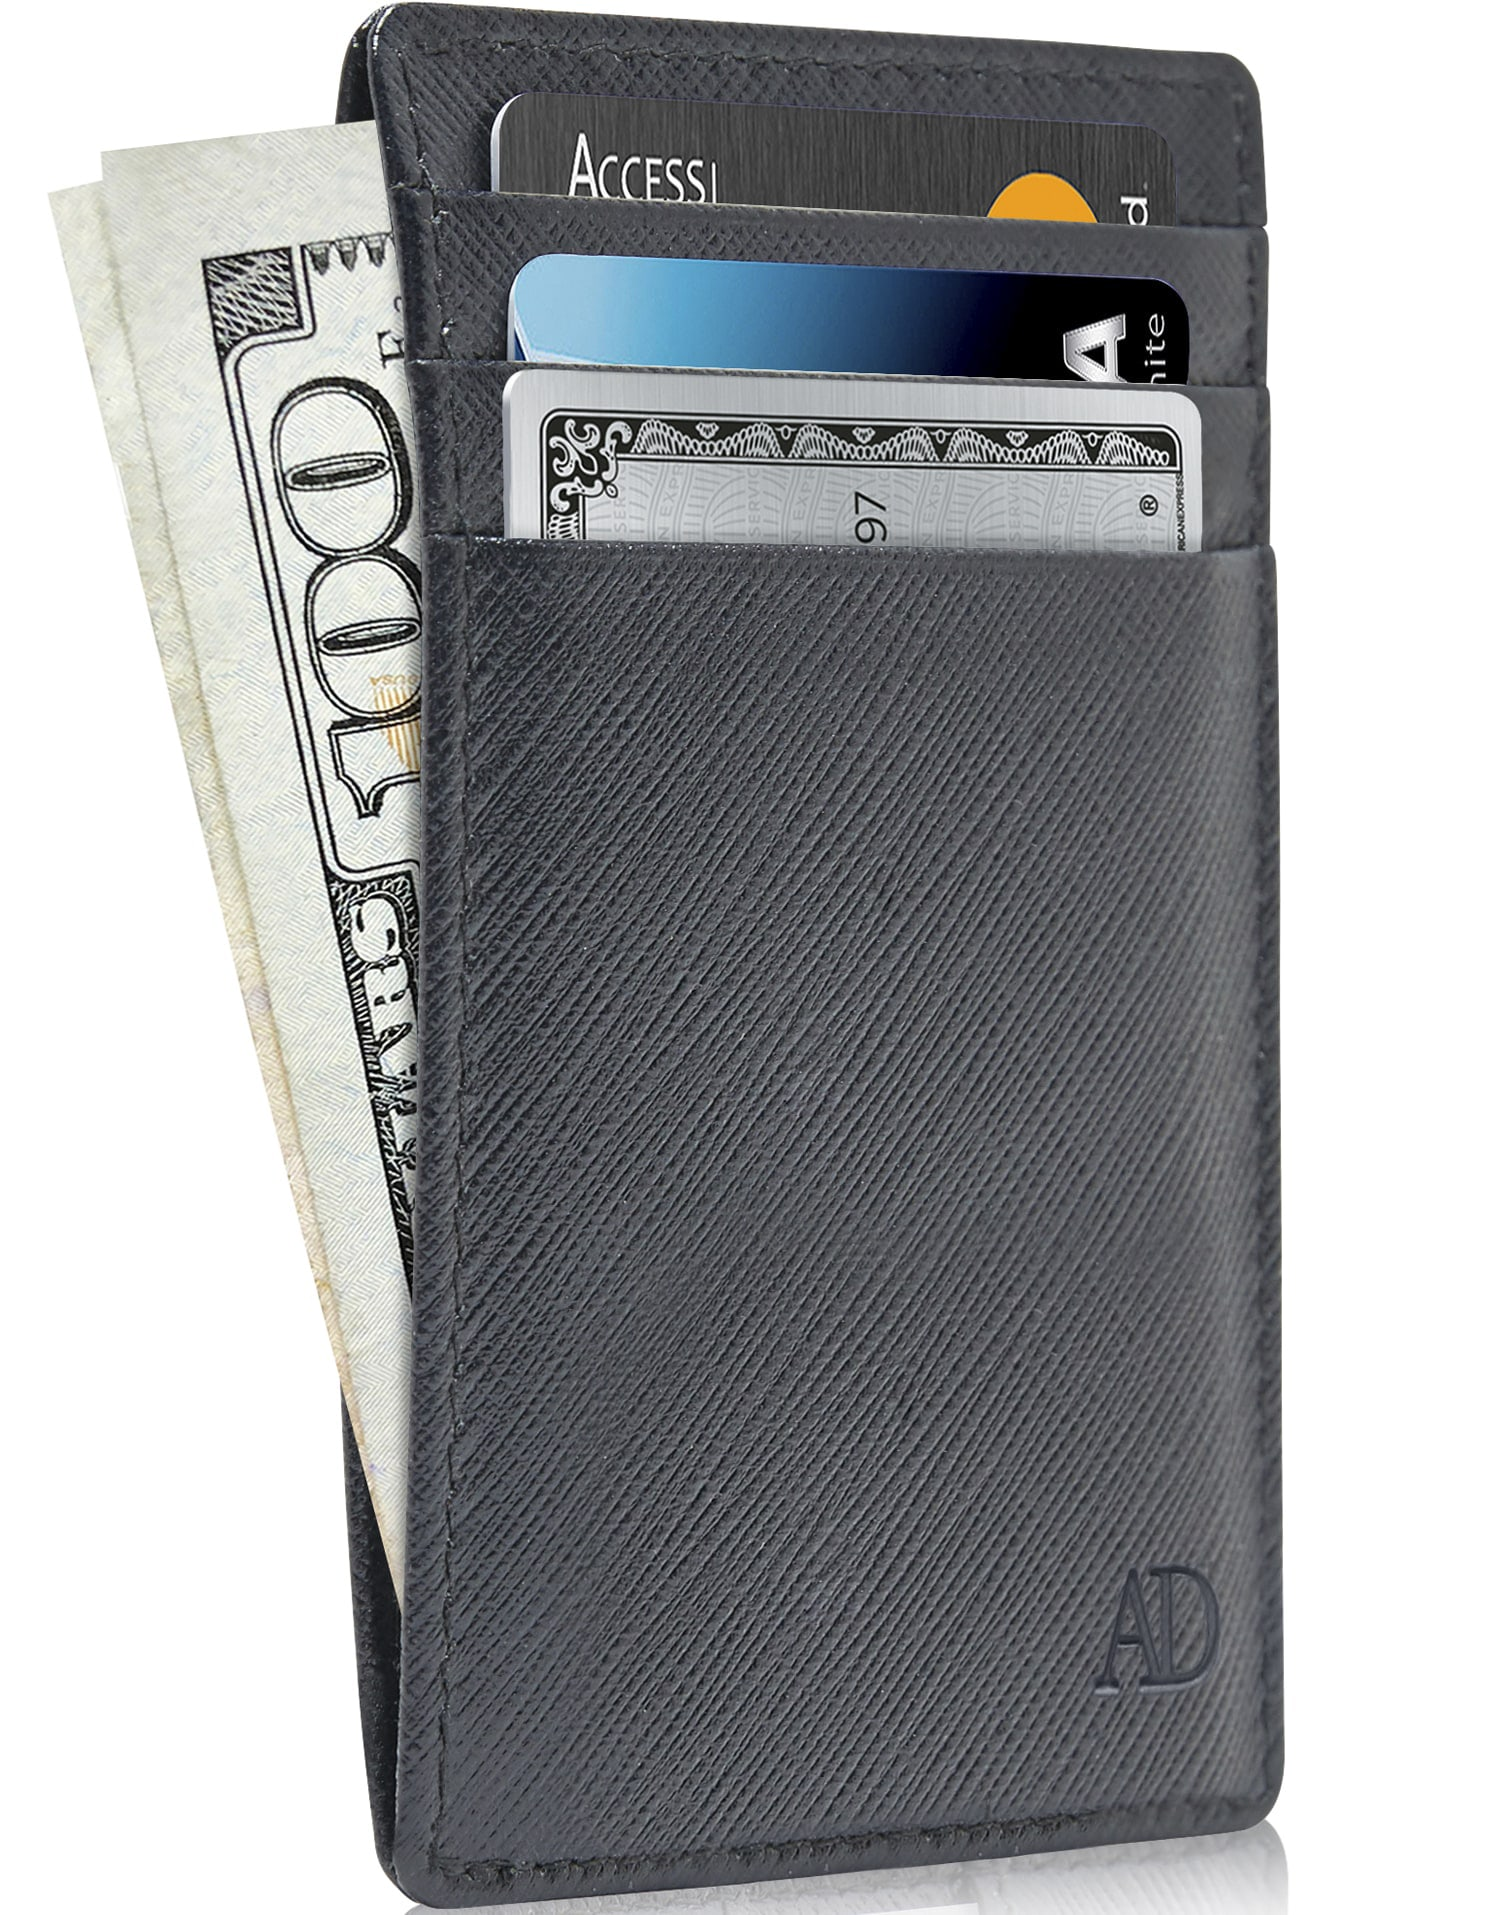 New HQ Real Leather 12 Credit Card Holder Wallet Black Available in Gift Box